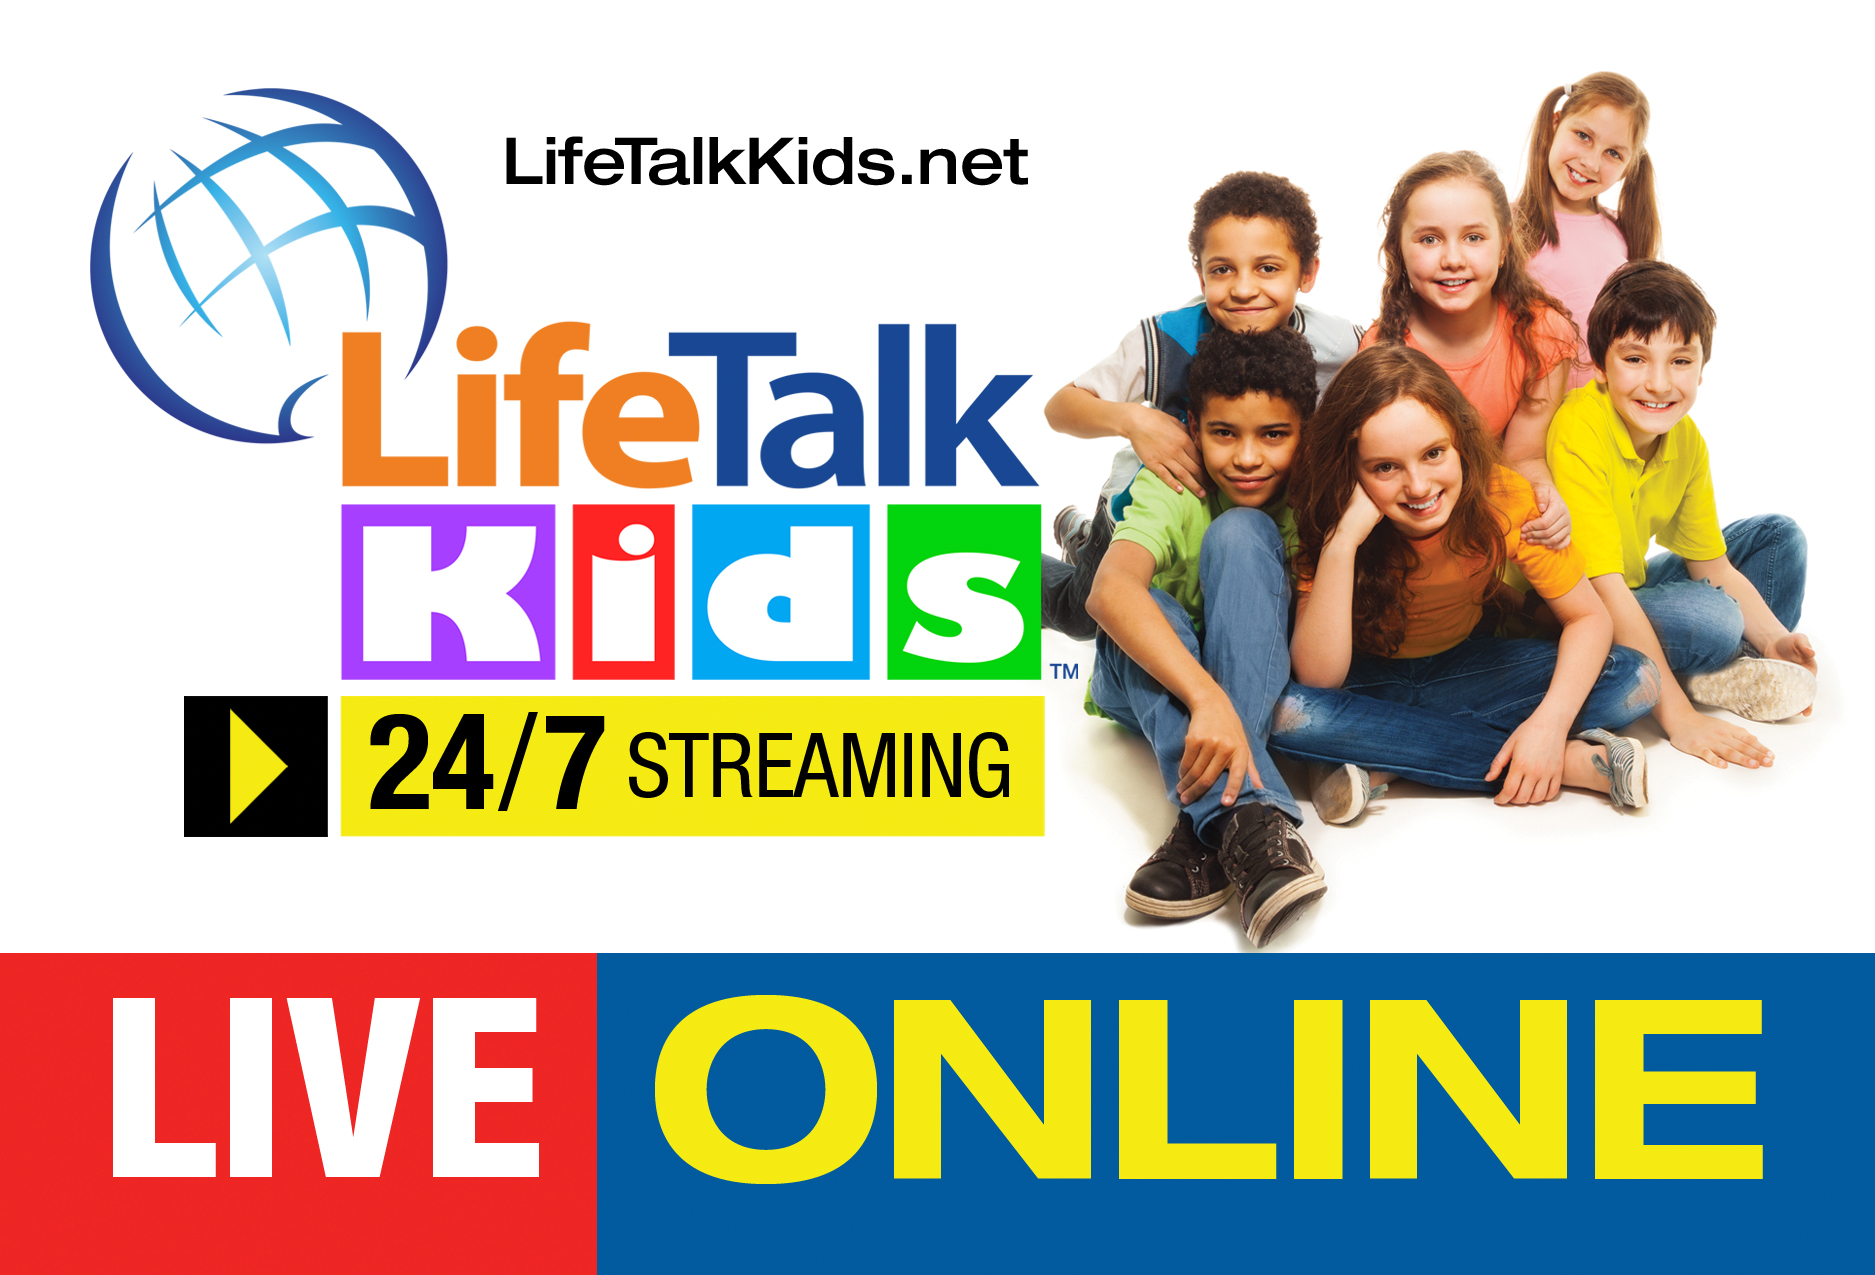 LifeTalkKids is now available on LifeTalk Radio